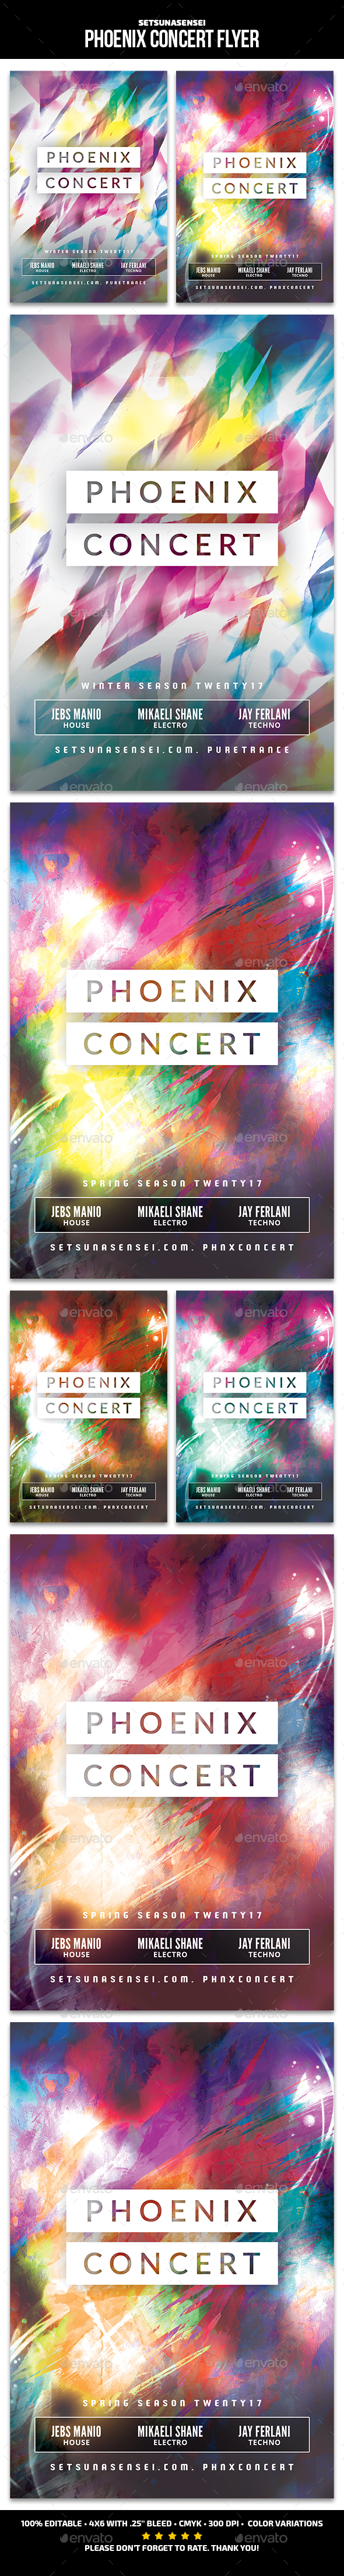 Phoenix Concert Flyer - Clubs & Parties Events